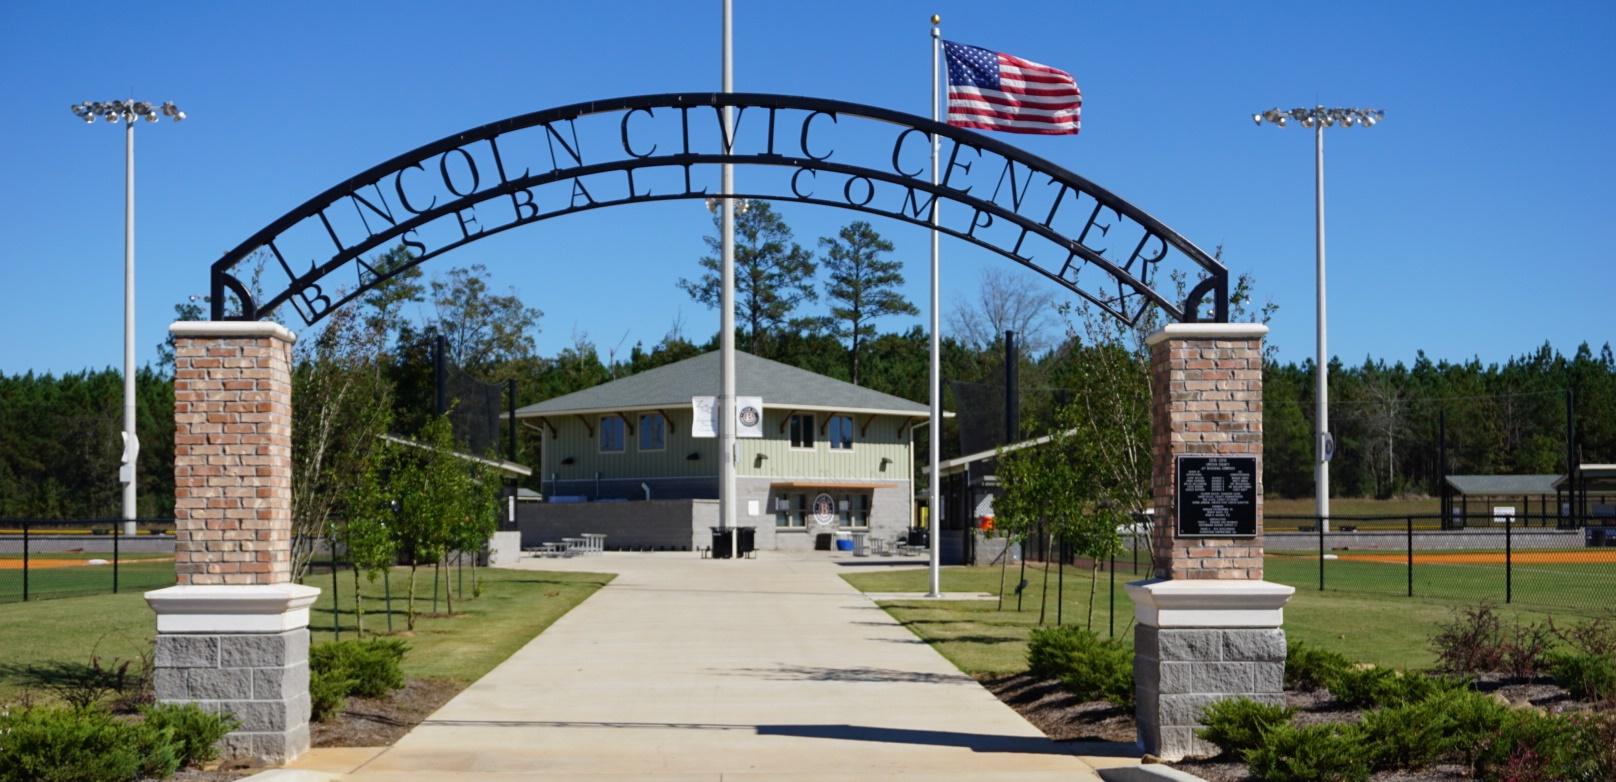 LCCC Baseball Complex Entrance